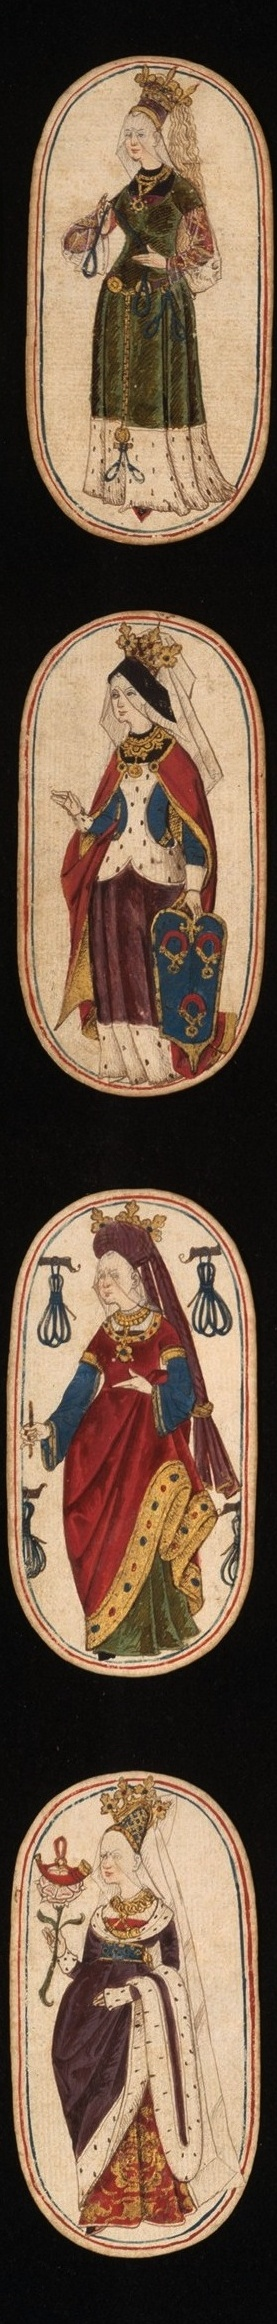 From a set of fifty-two playing cards, ca. 1470–1485, South Netherlandish. The suit symbols, based on equipment associated with the hunt, are hunting horns, dog collars, hound tethers, and game nooses.